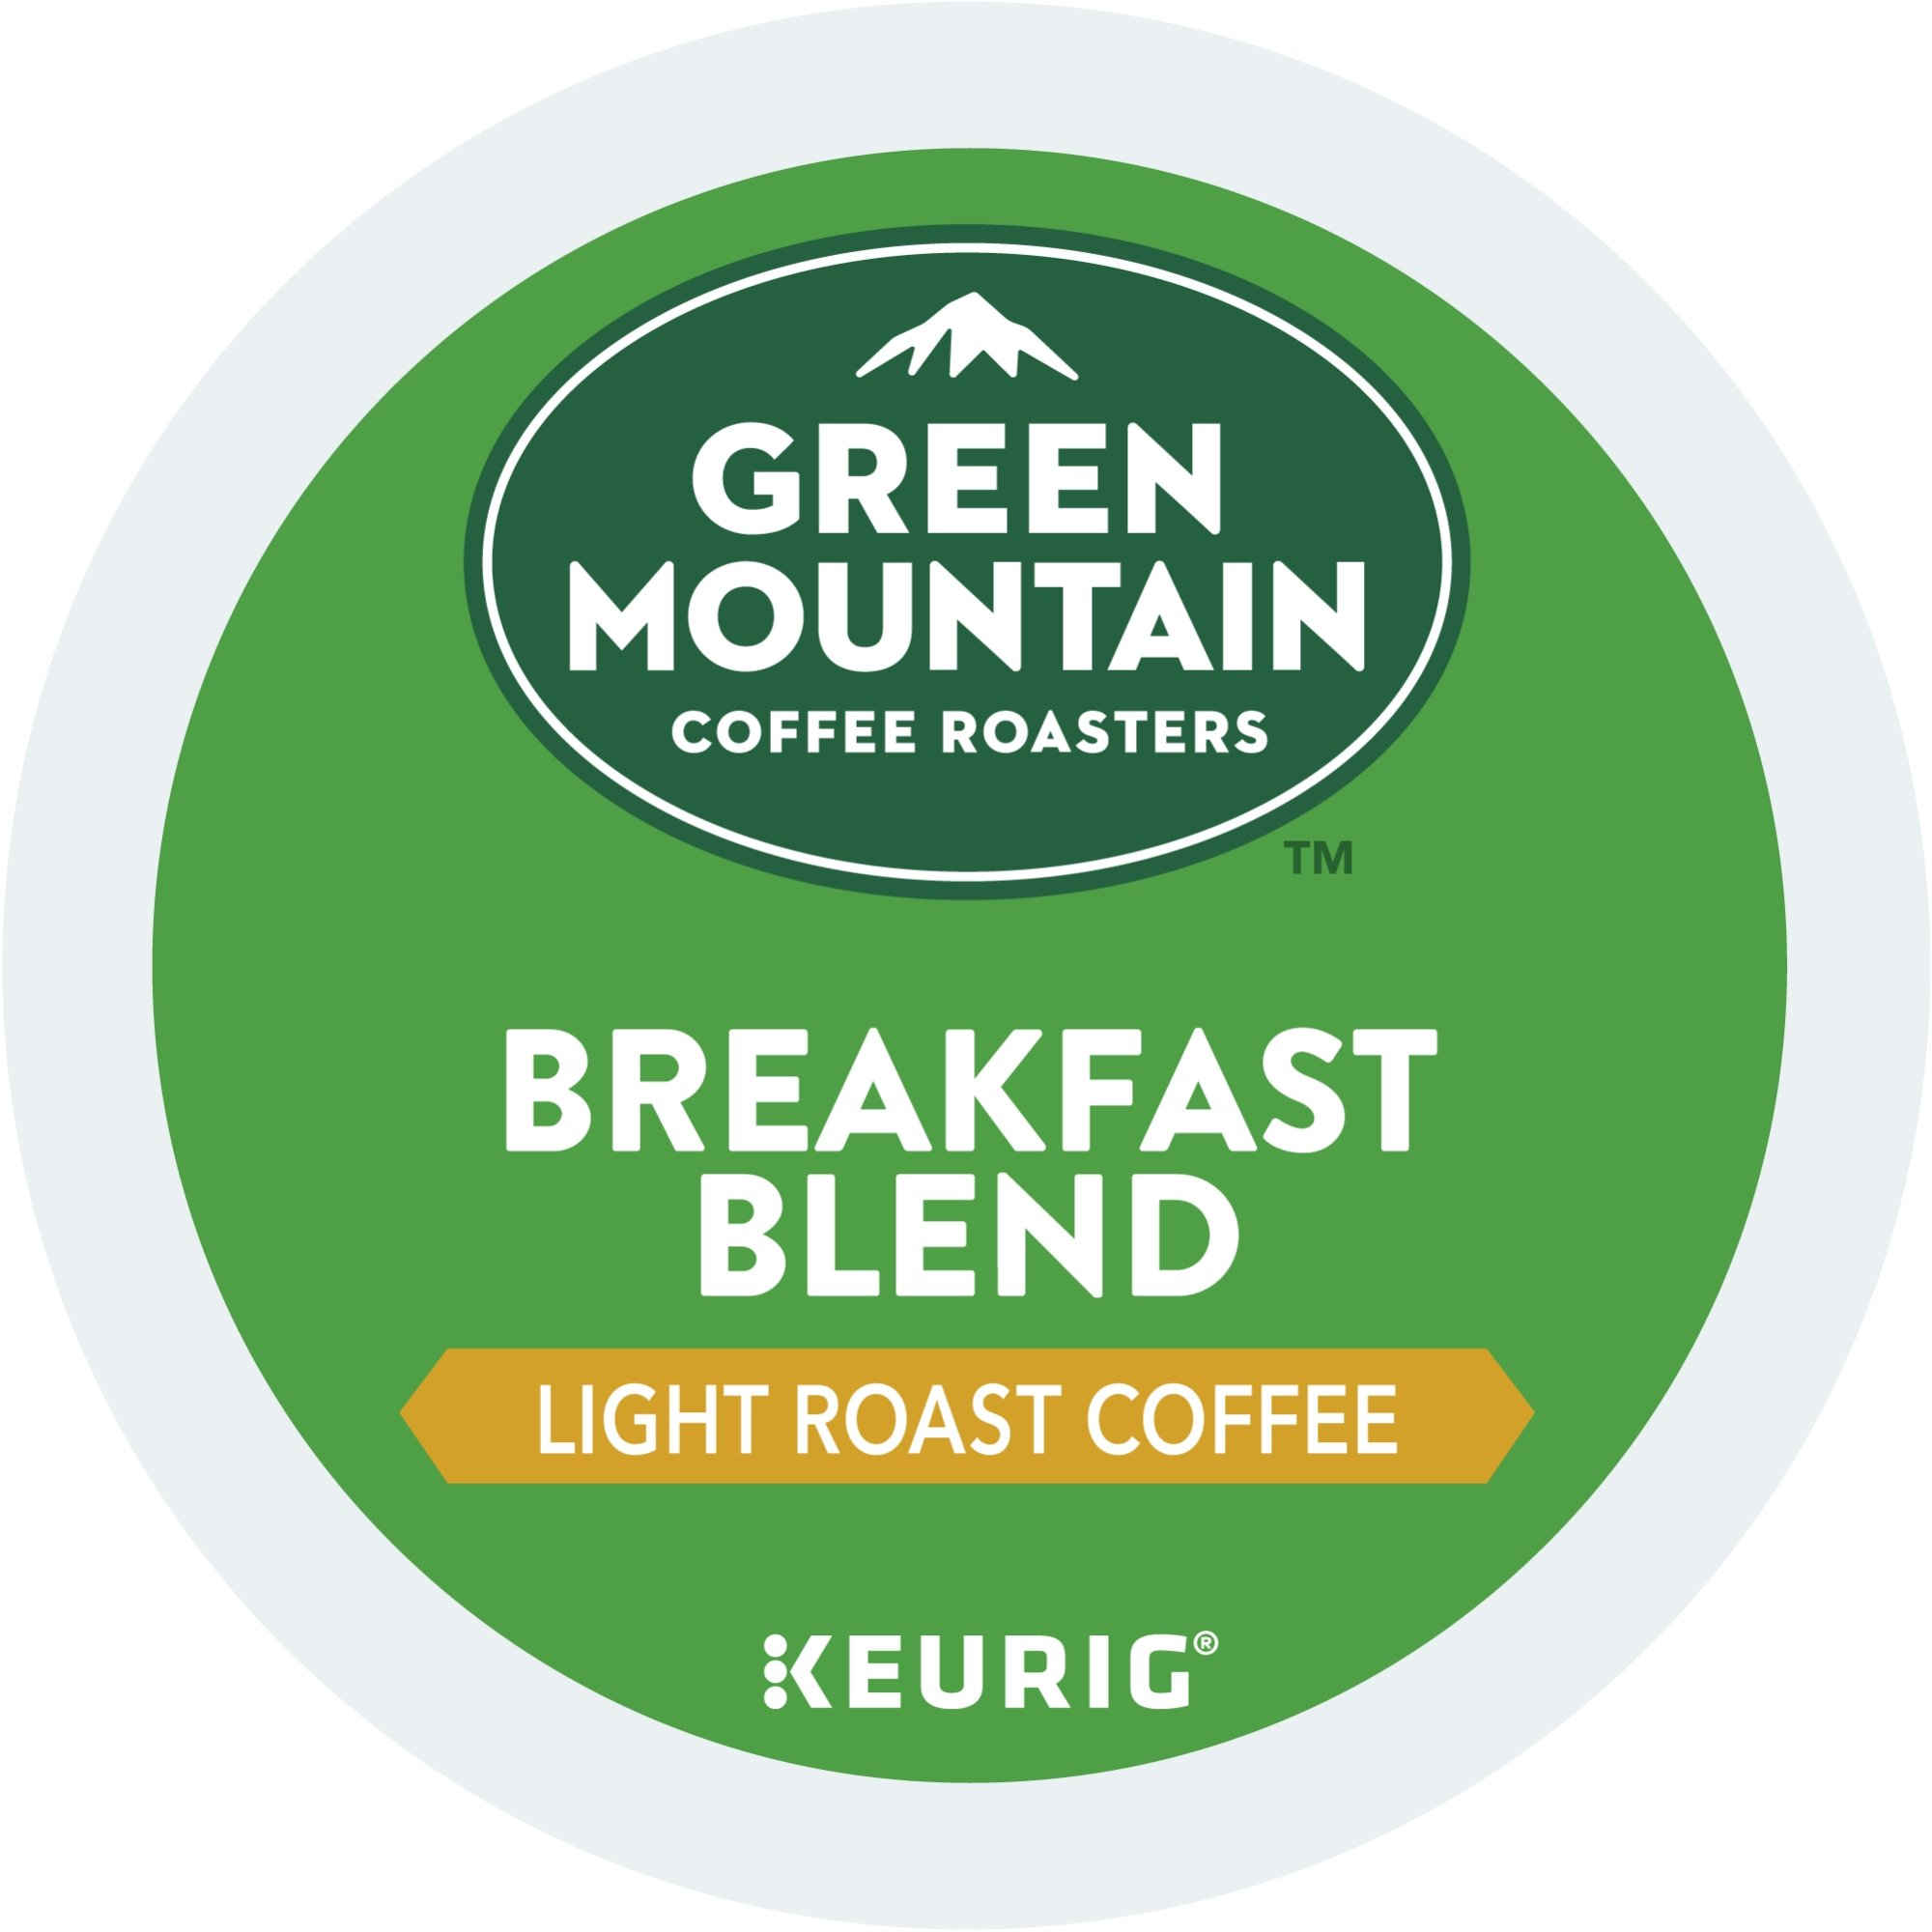 Green Mountain Coffee Roasters Breakfast Blend Keurig Single-Serve K-Cup Pods, Light Roast Coffee, 24 Count